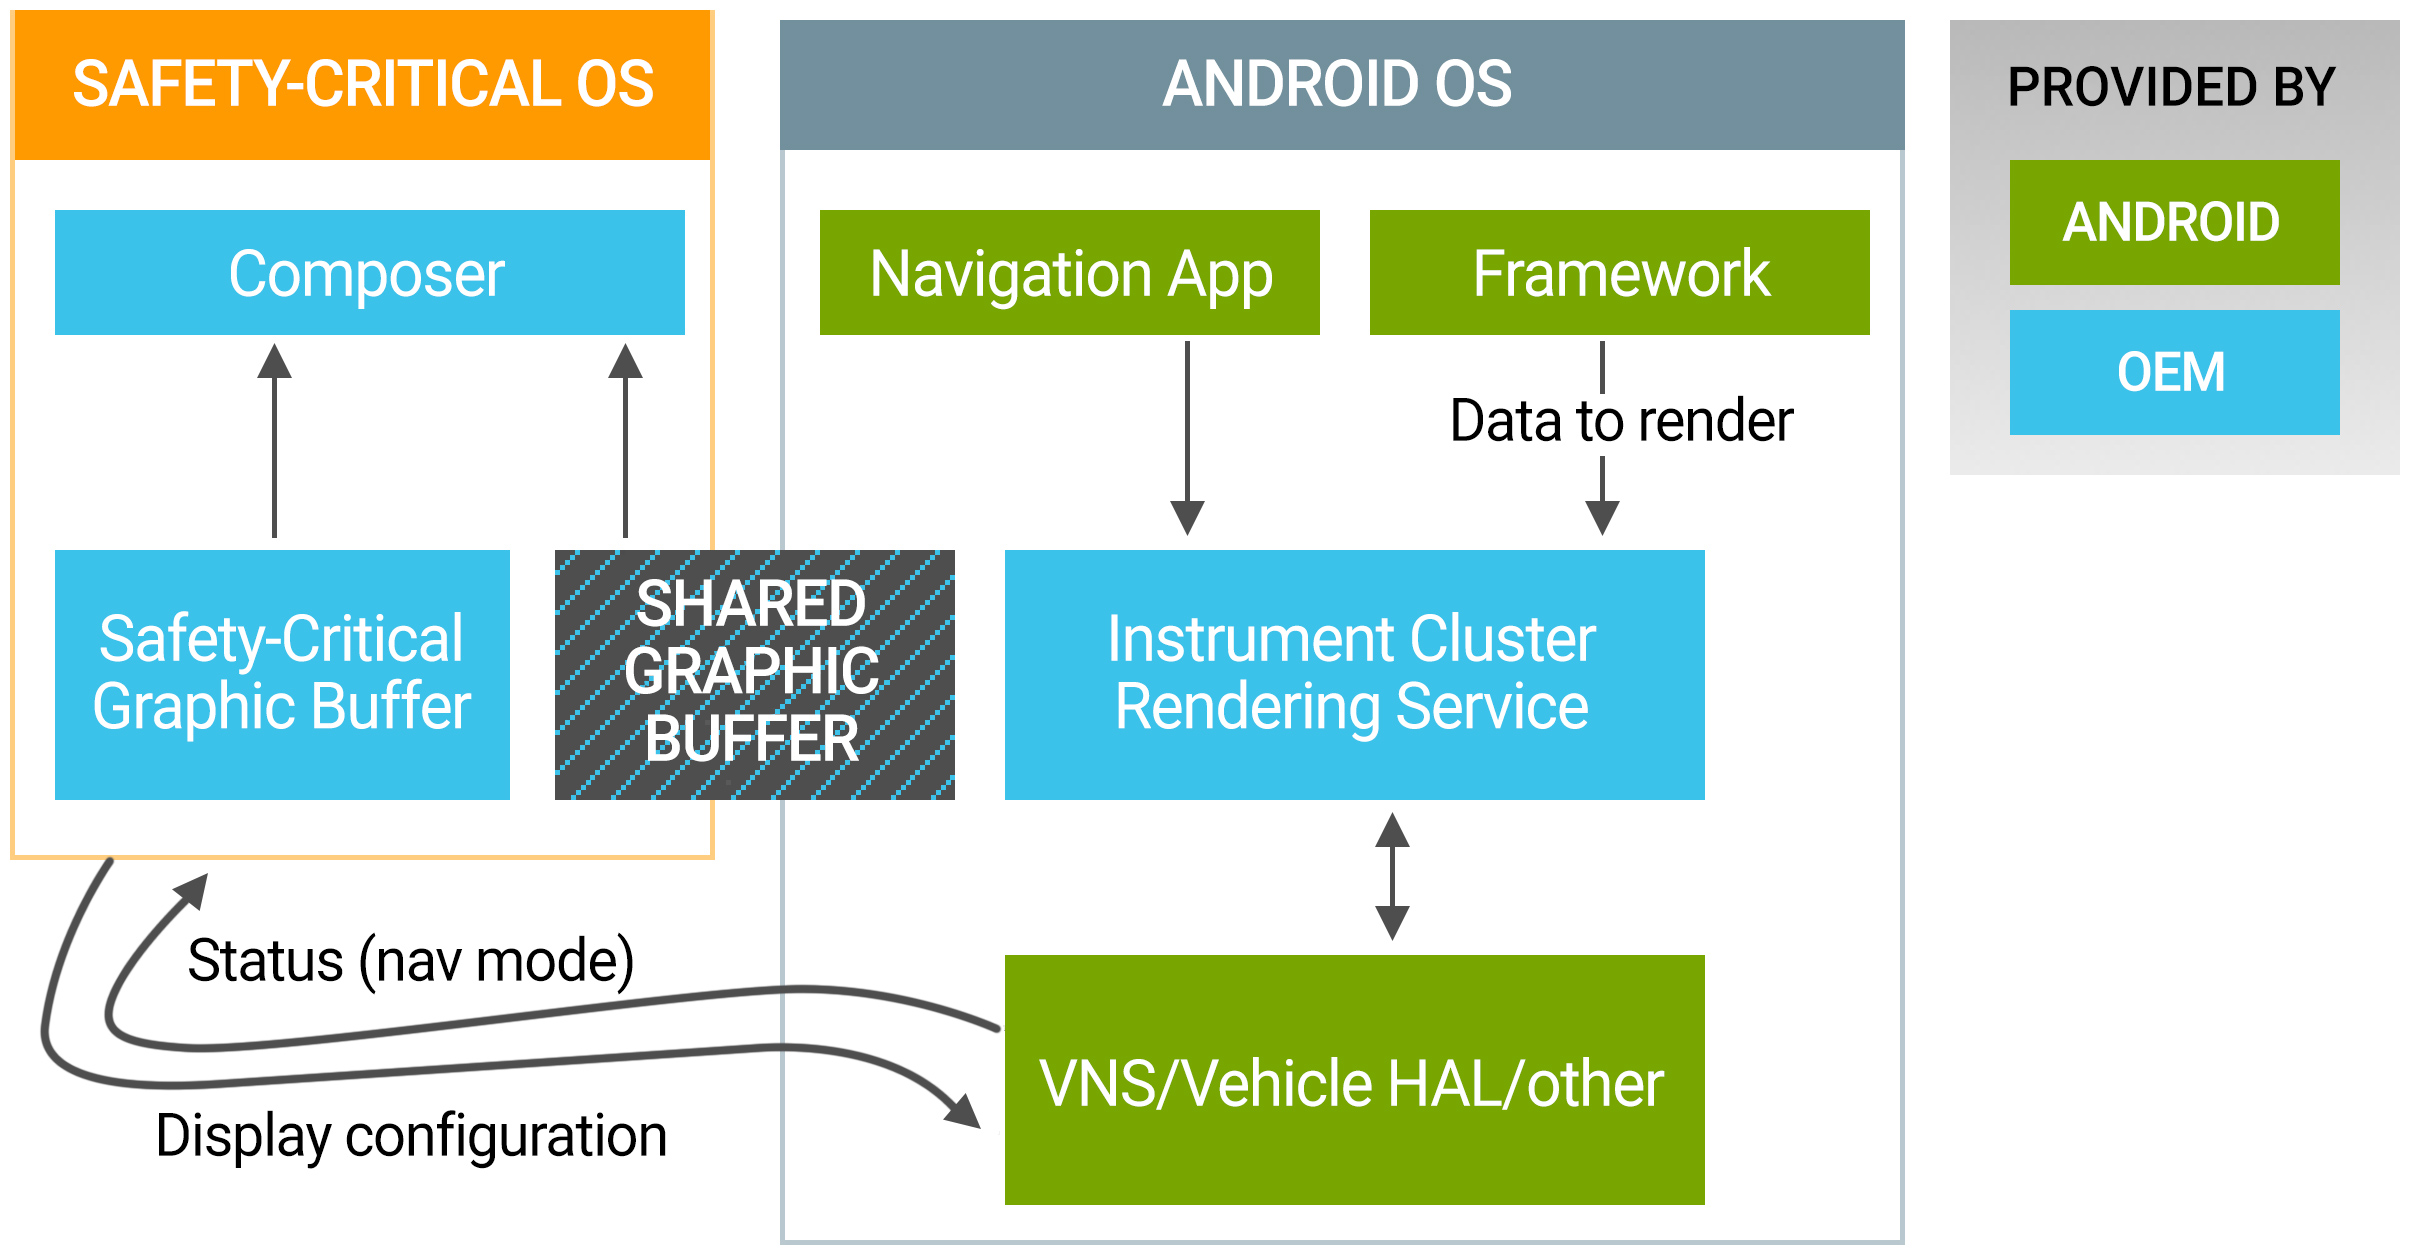 """Here's who-owns-what for Android Automotive. Note that there is a second orange """"Safety-critical OS"""" for the dashboard."""